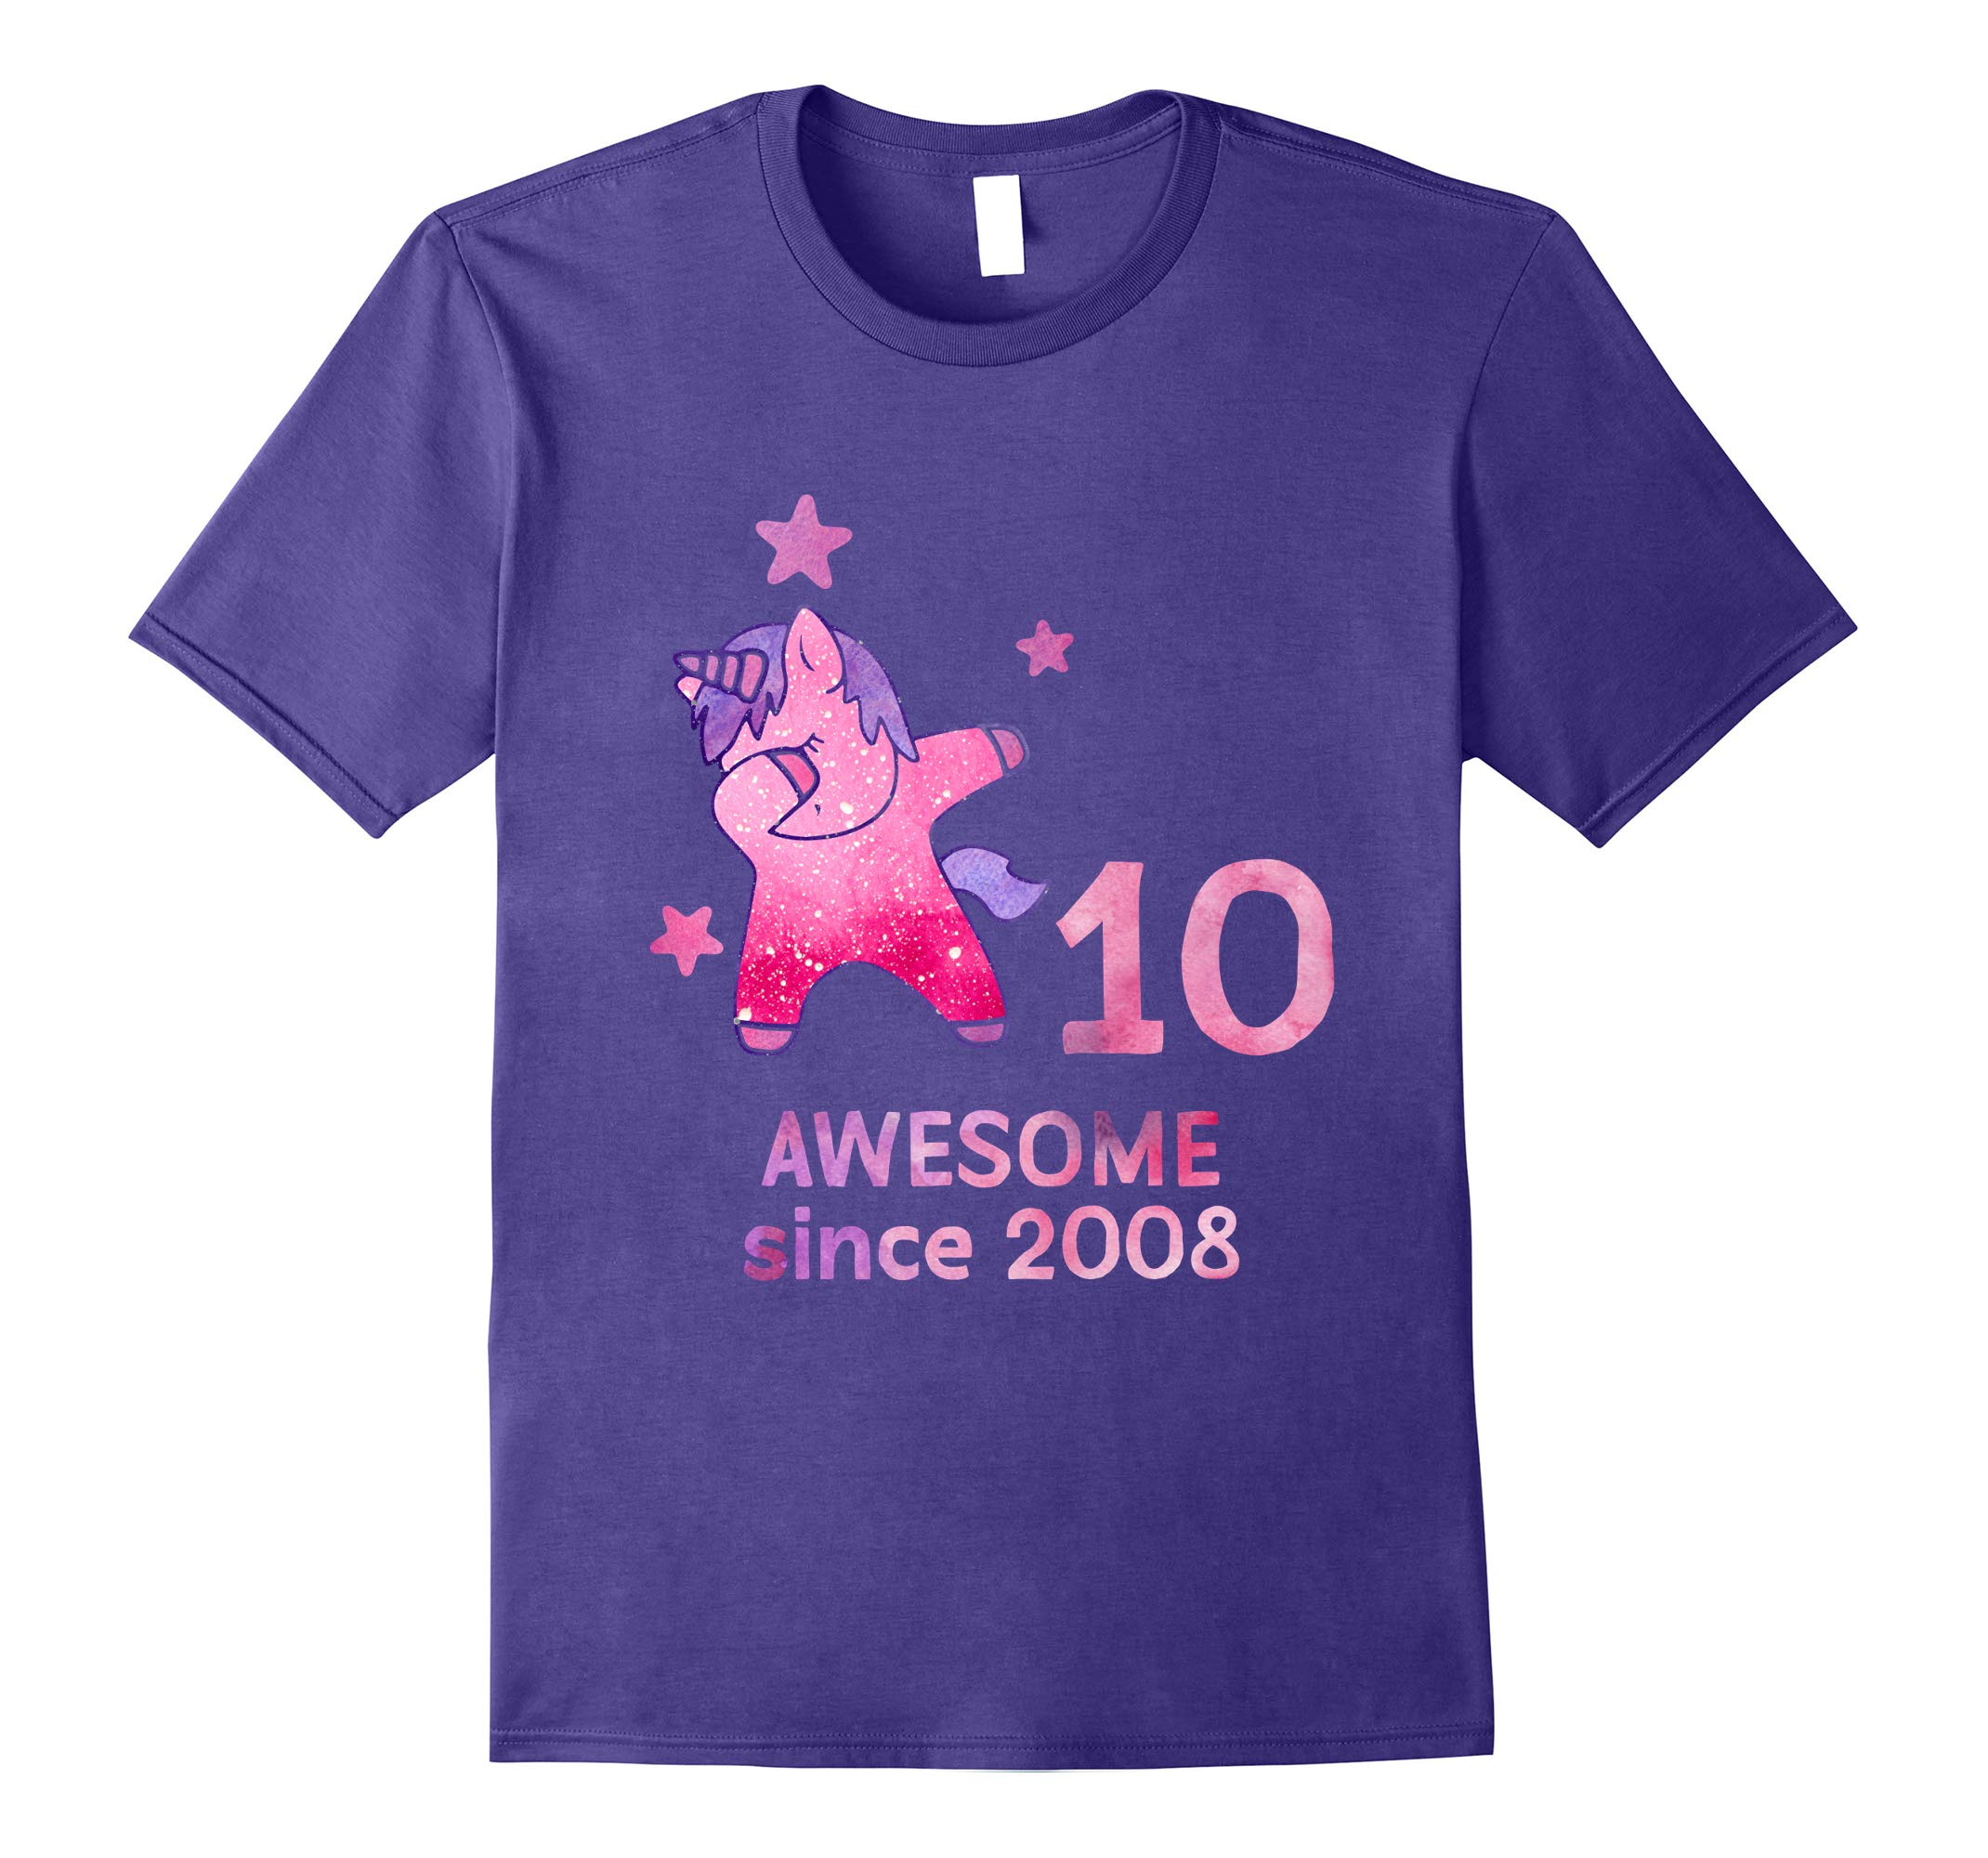 10th Birthday Shirt Unicorn Gift Girls Age 10 Women Tshirt-RT